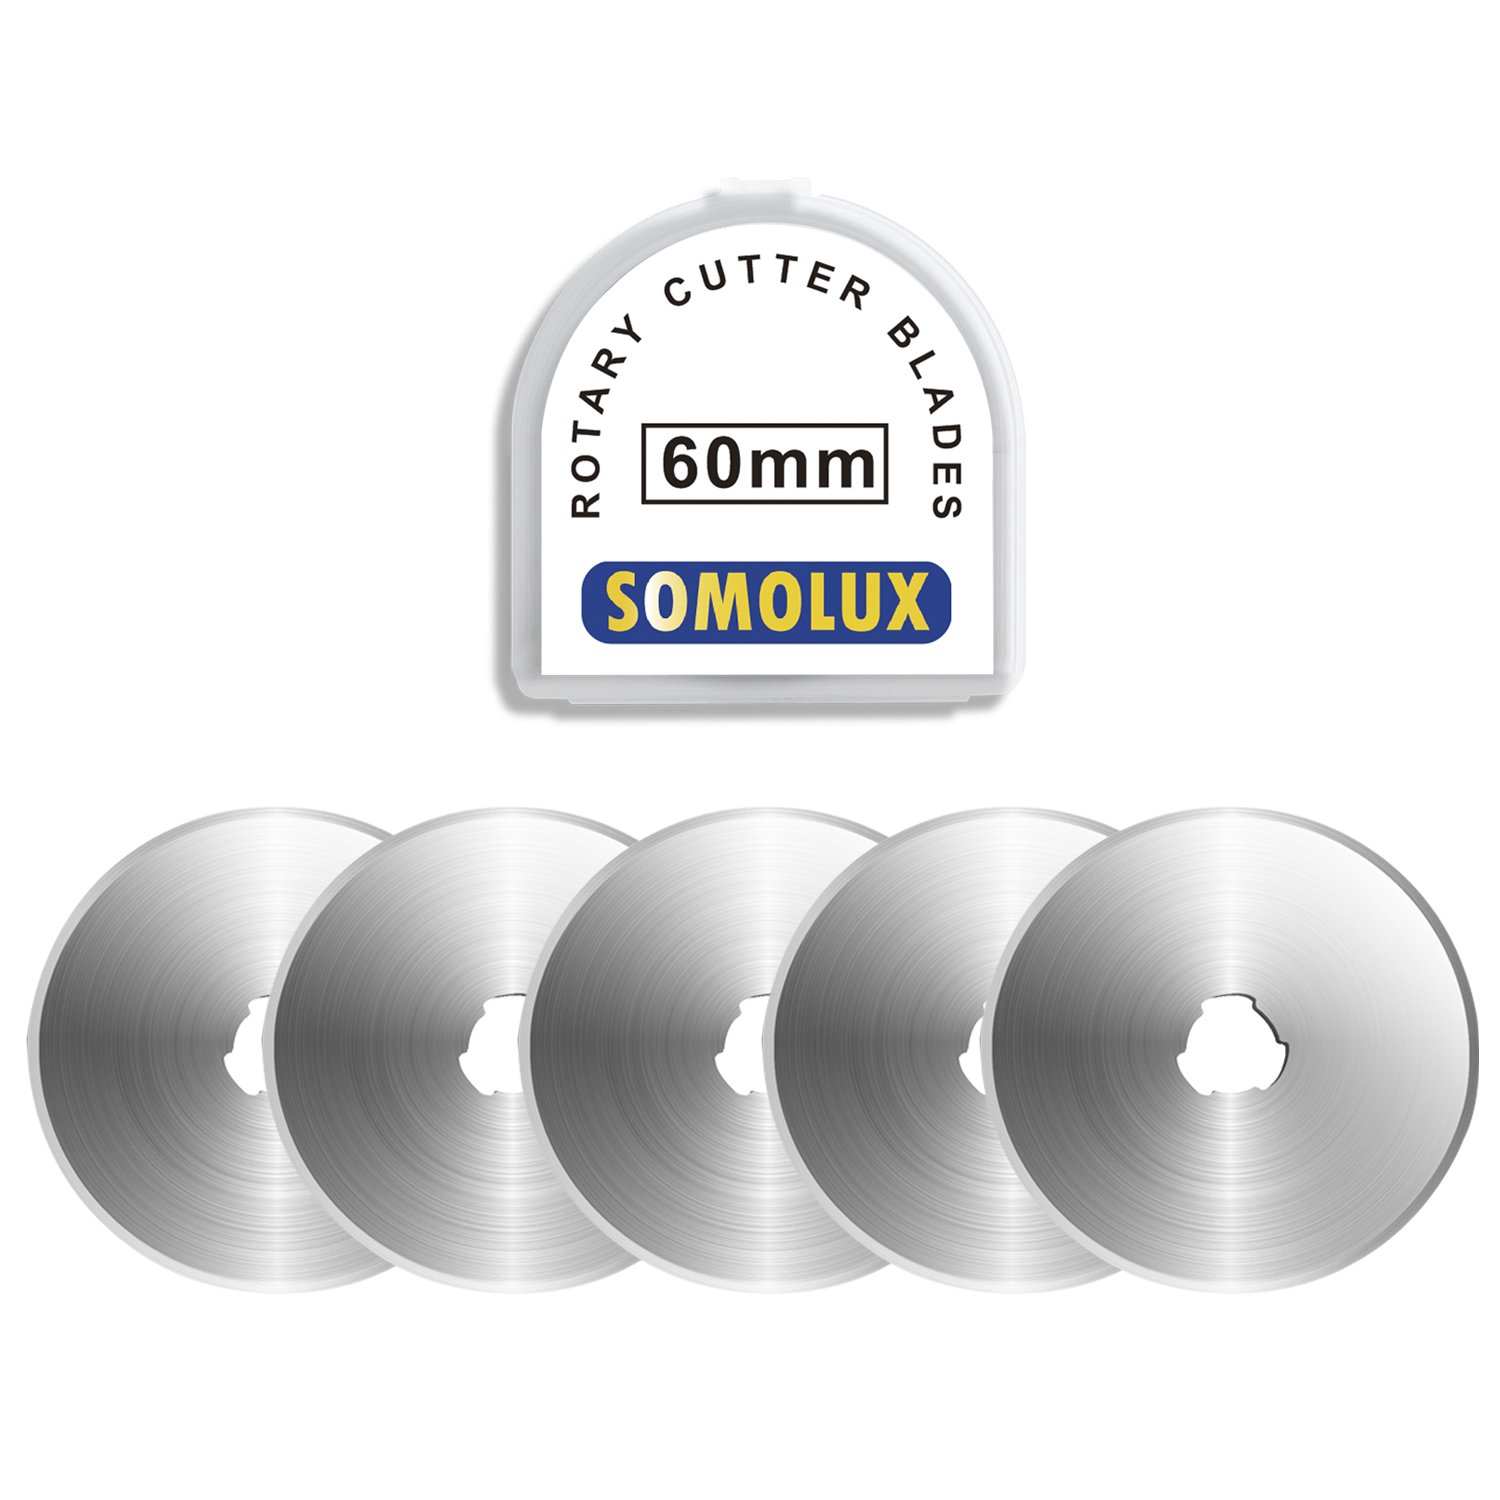 SOMOLUX 60mm Rotary Blades 5 Pack Fits OLFA,Fiskars,Truecut,DAFA Cutter Replacement, Quilting Scrapbooking Sewing Arts Crafts,Sharp and Durable